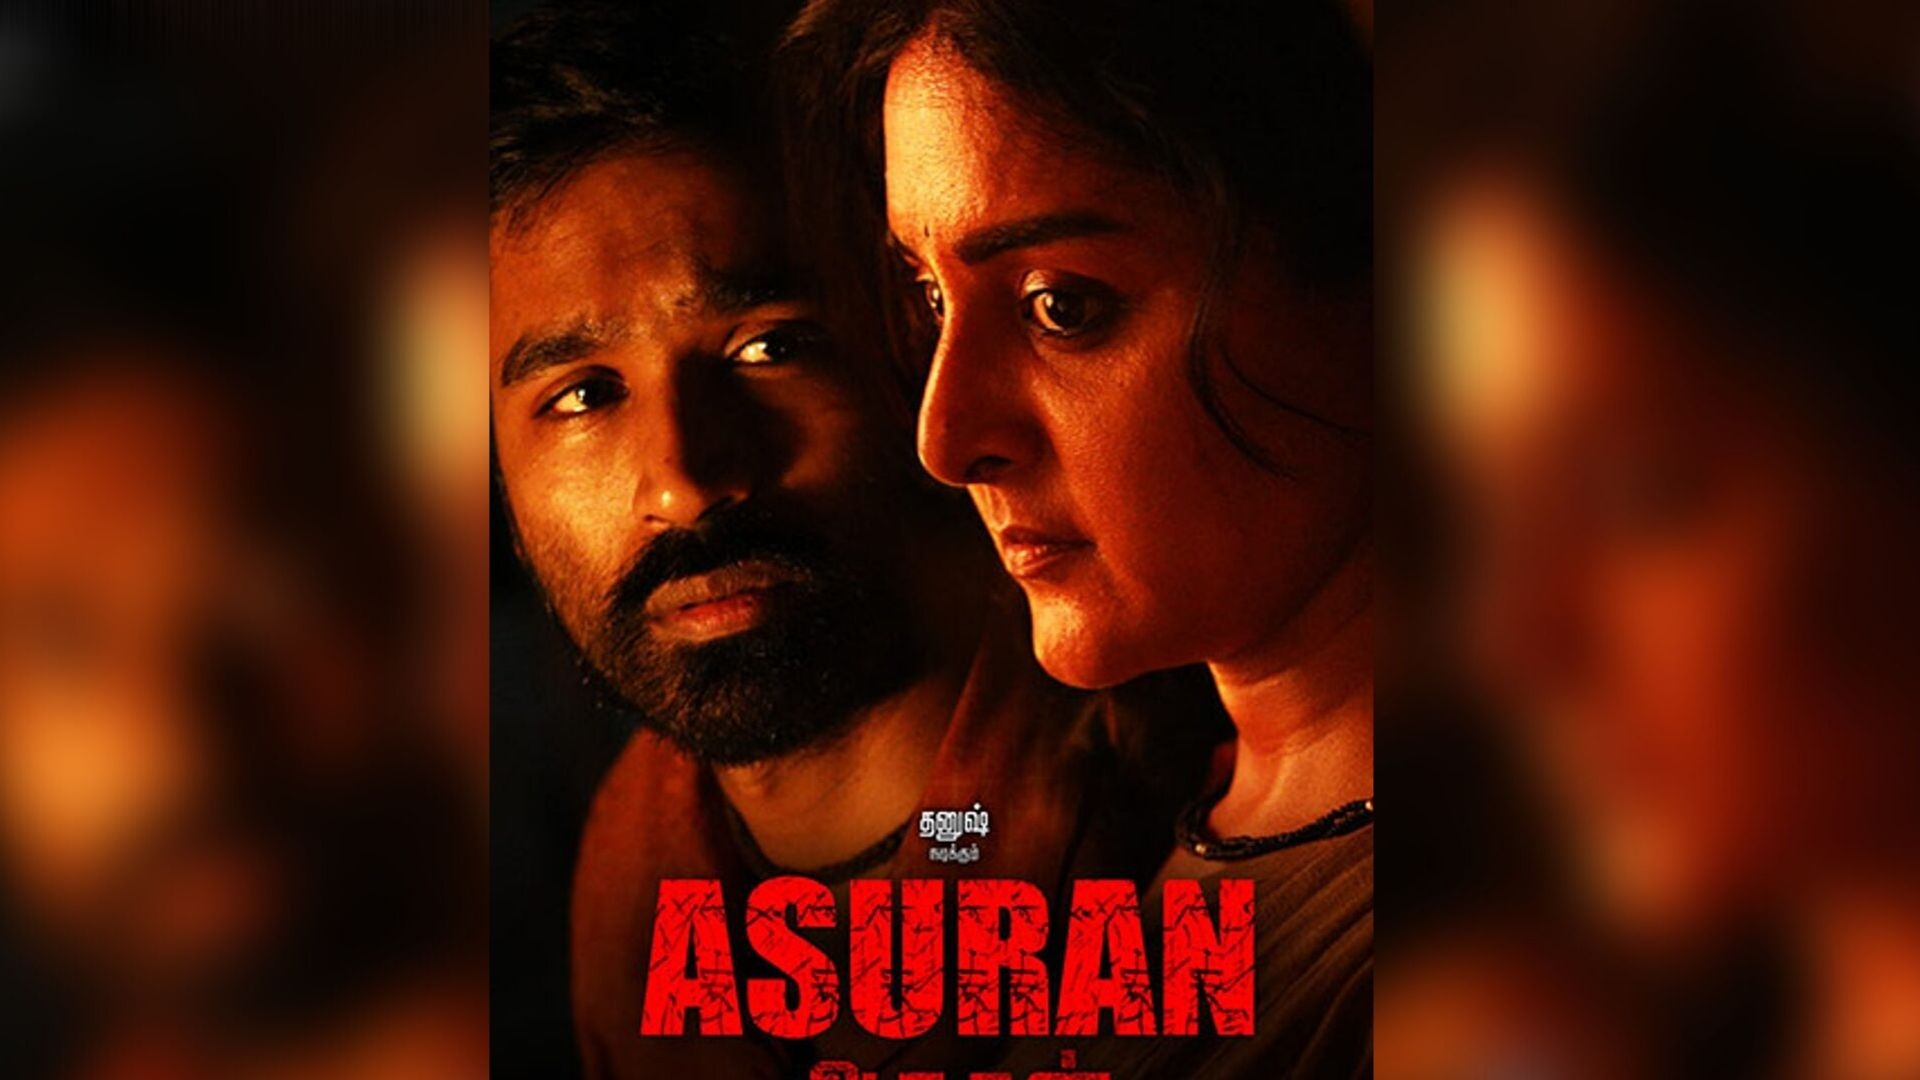 Dhanush and 16-Year-Old Ken Deliver the Goods in 'Asuran'